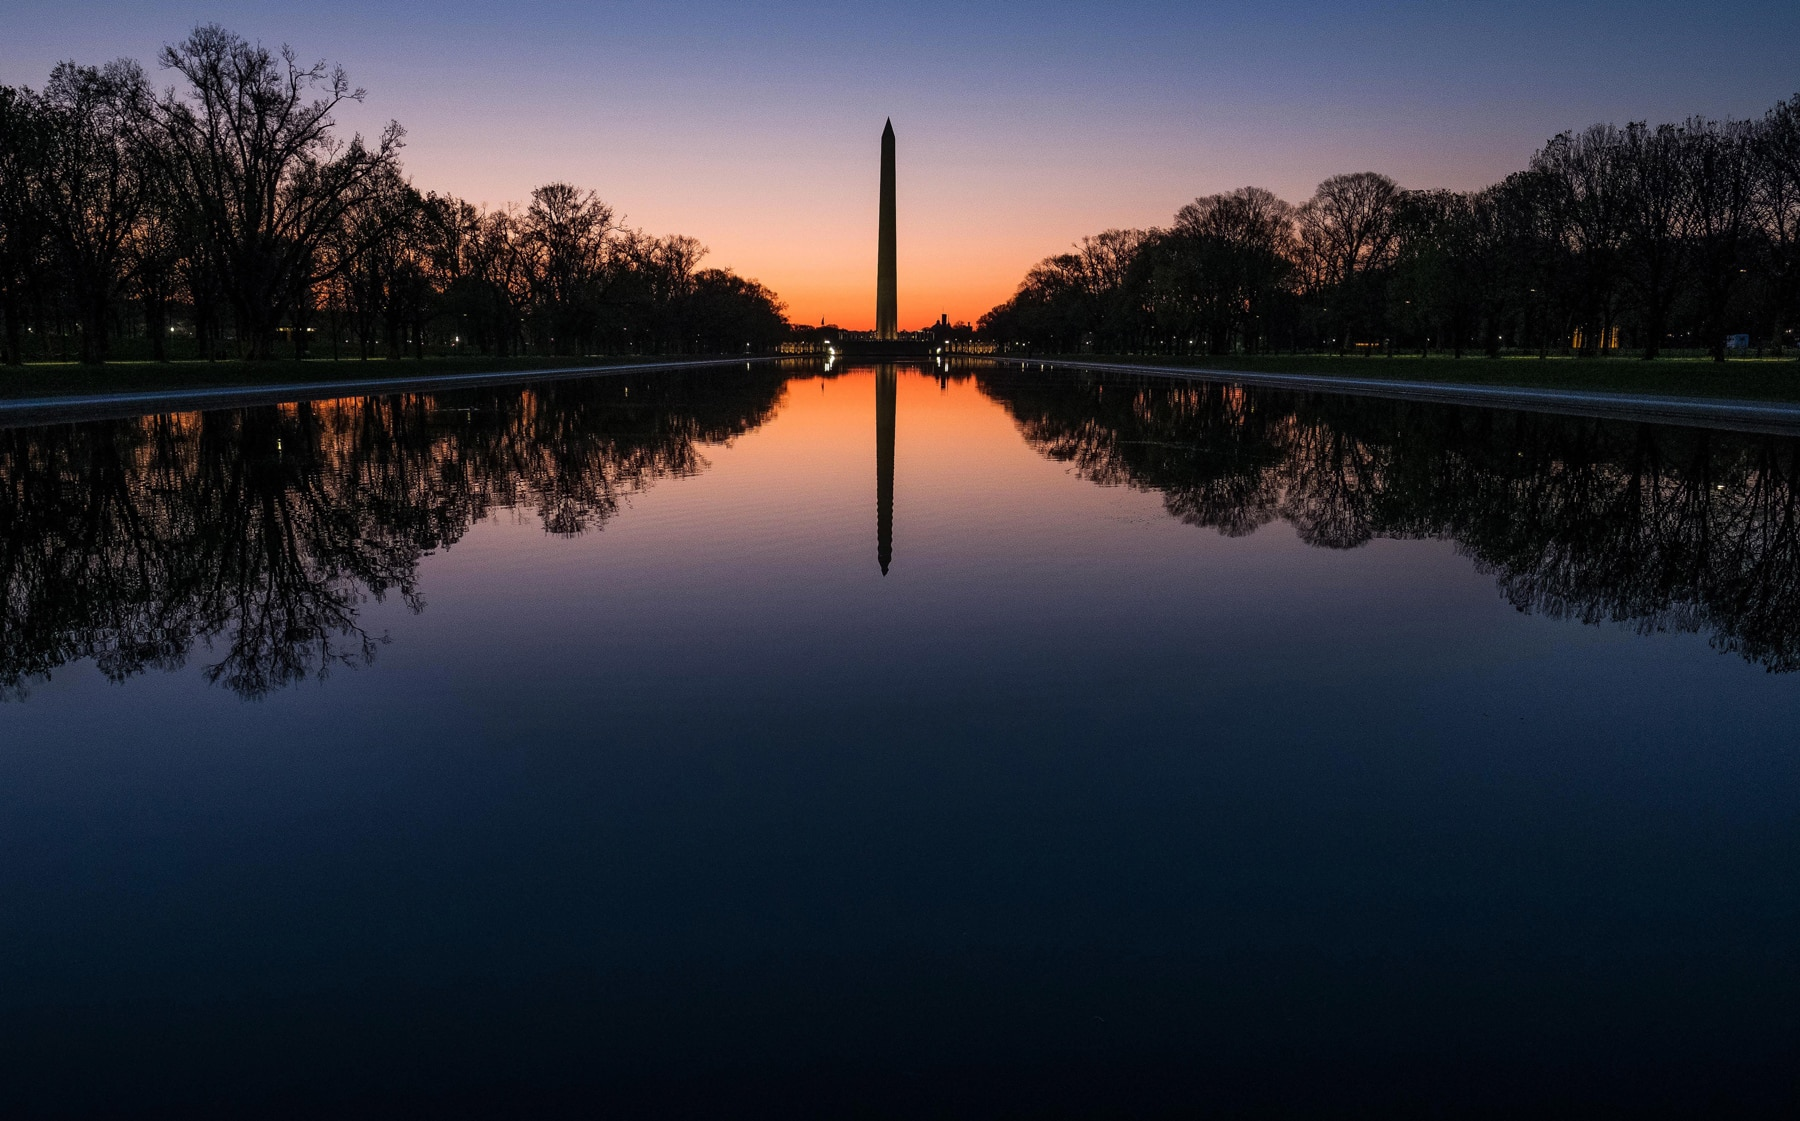 Washington Monument mirrored in Reflecting Pool (© AP Images)